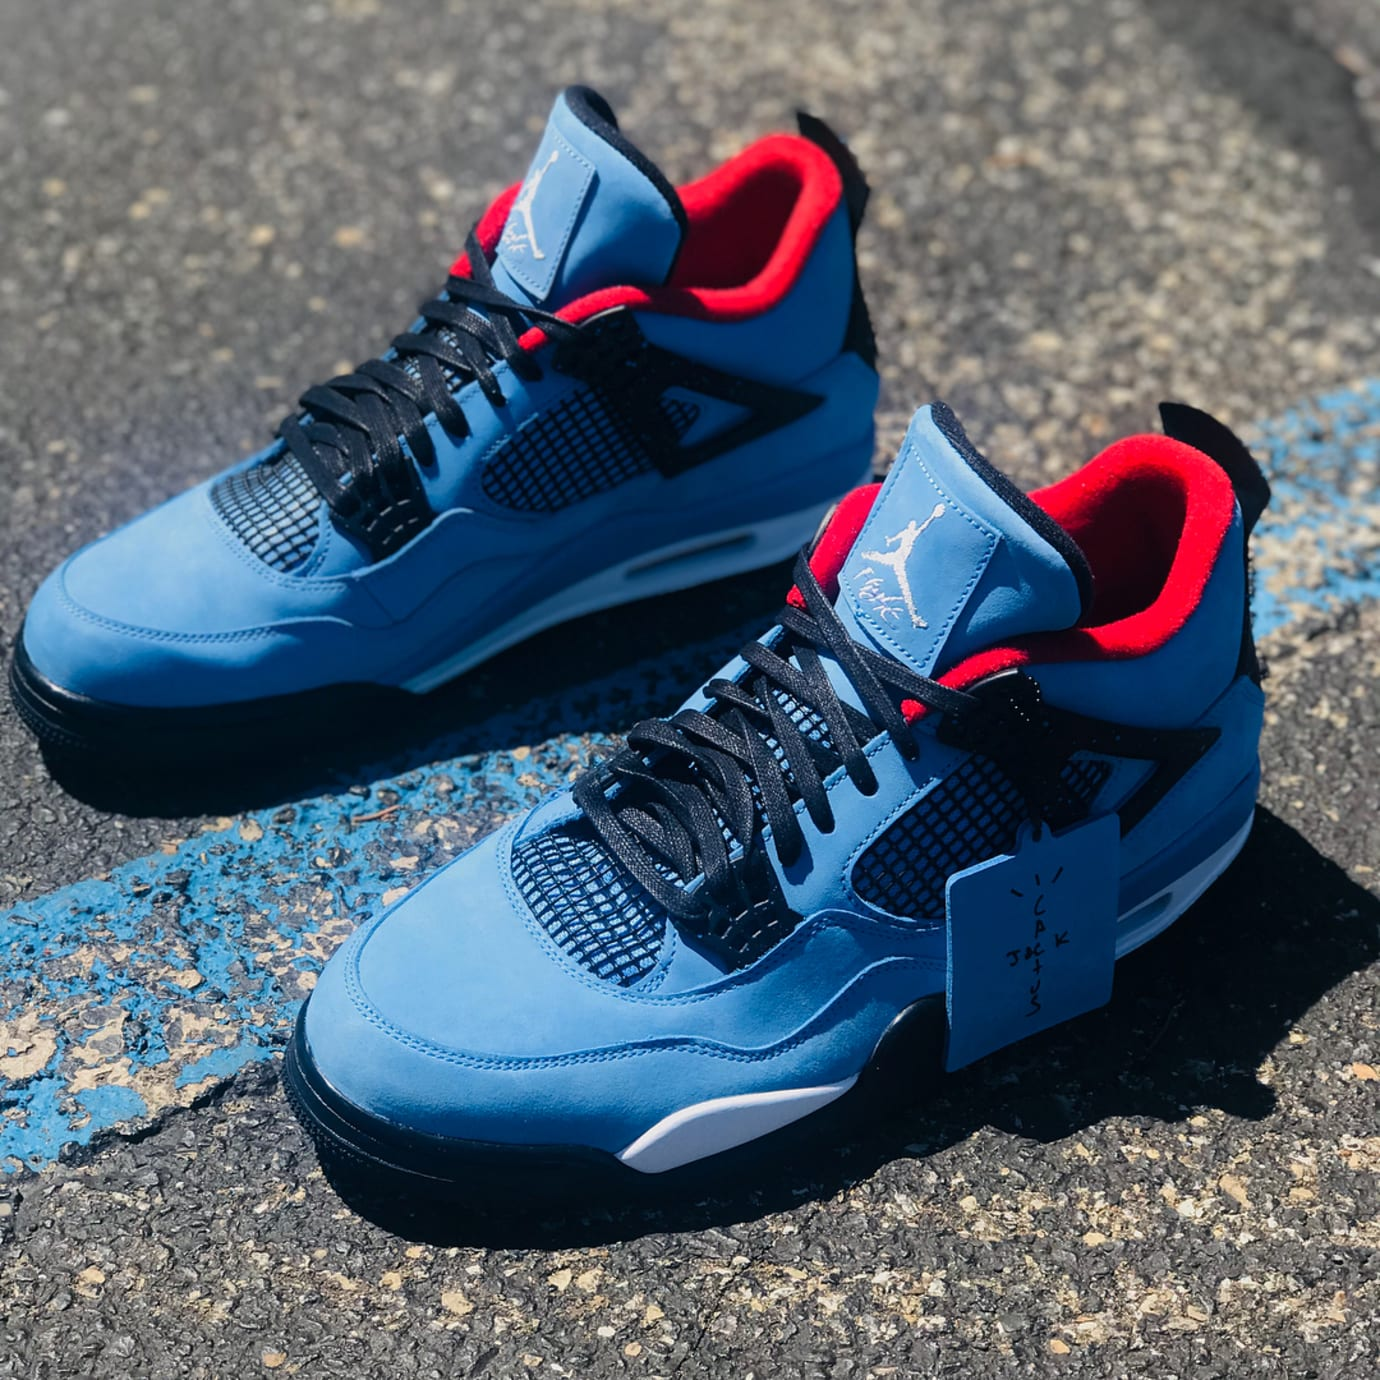 Travis Scott x Air Jordan 4 Oiler Release Date 308497-406 Beauty